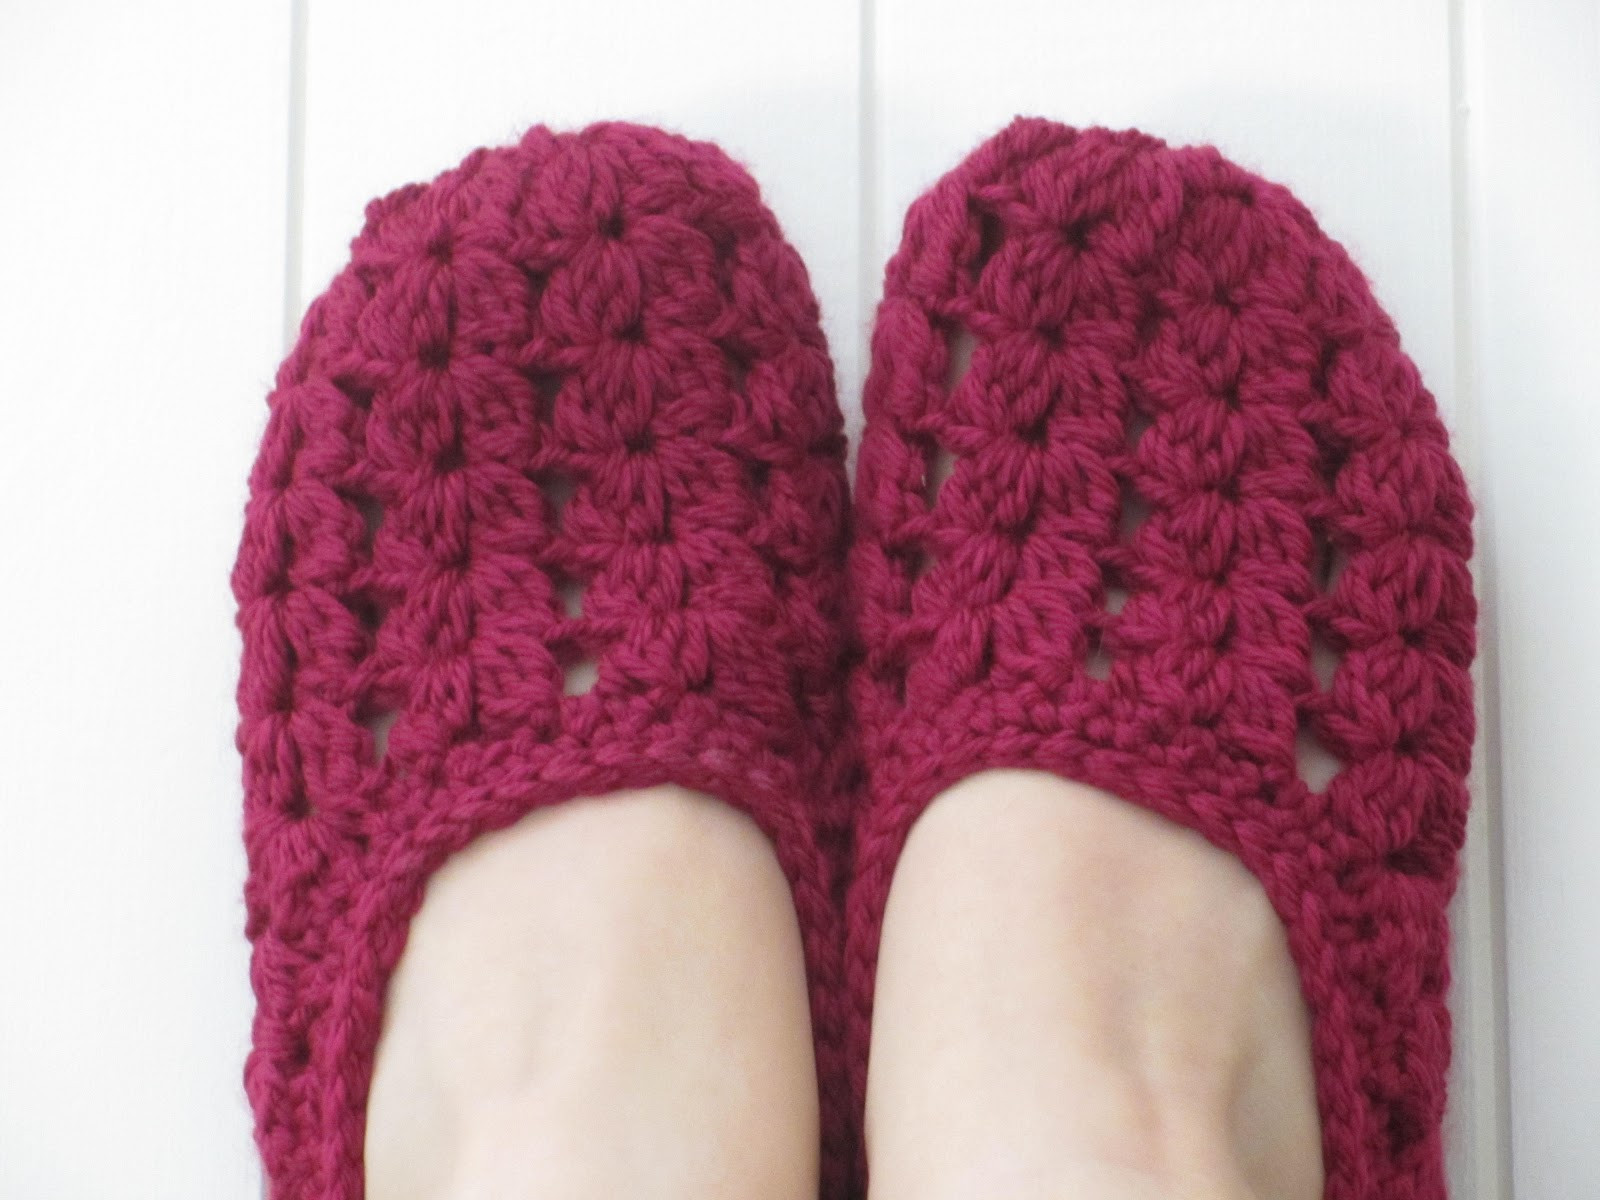 Elegant Jay S Boutique Blog Free Pattern Seaspray Slippers Plus Crochet Adult Slippers Of Charming 47 Ideas Crochet Adult Slippers